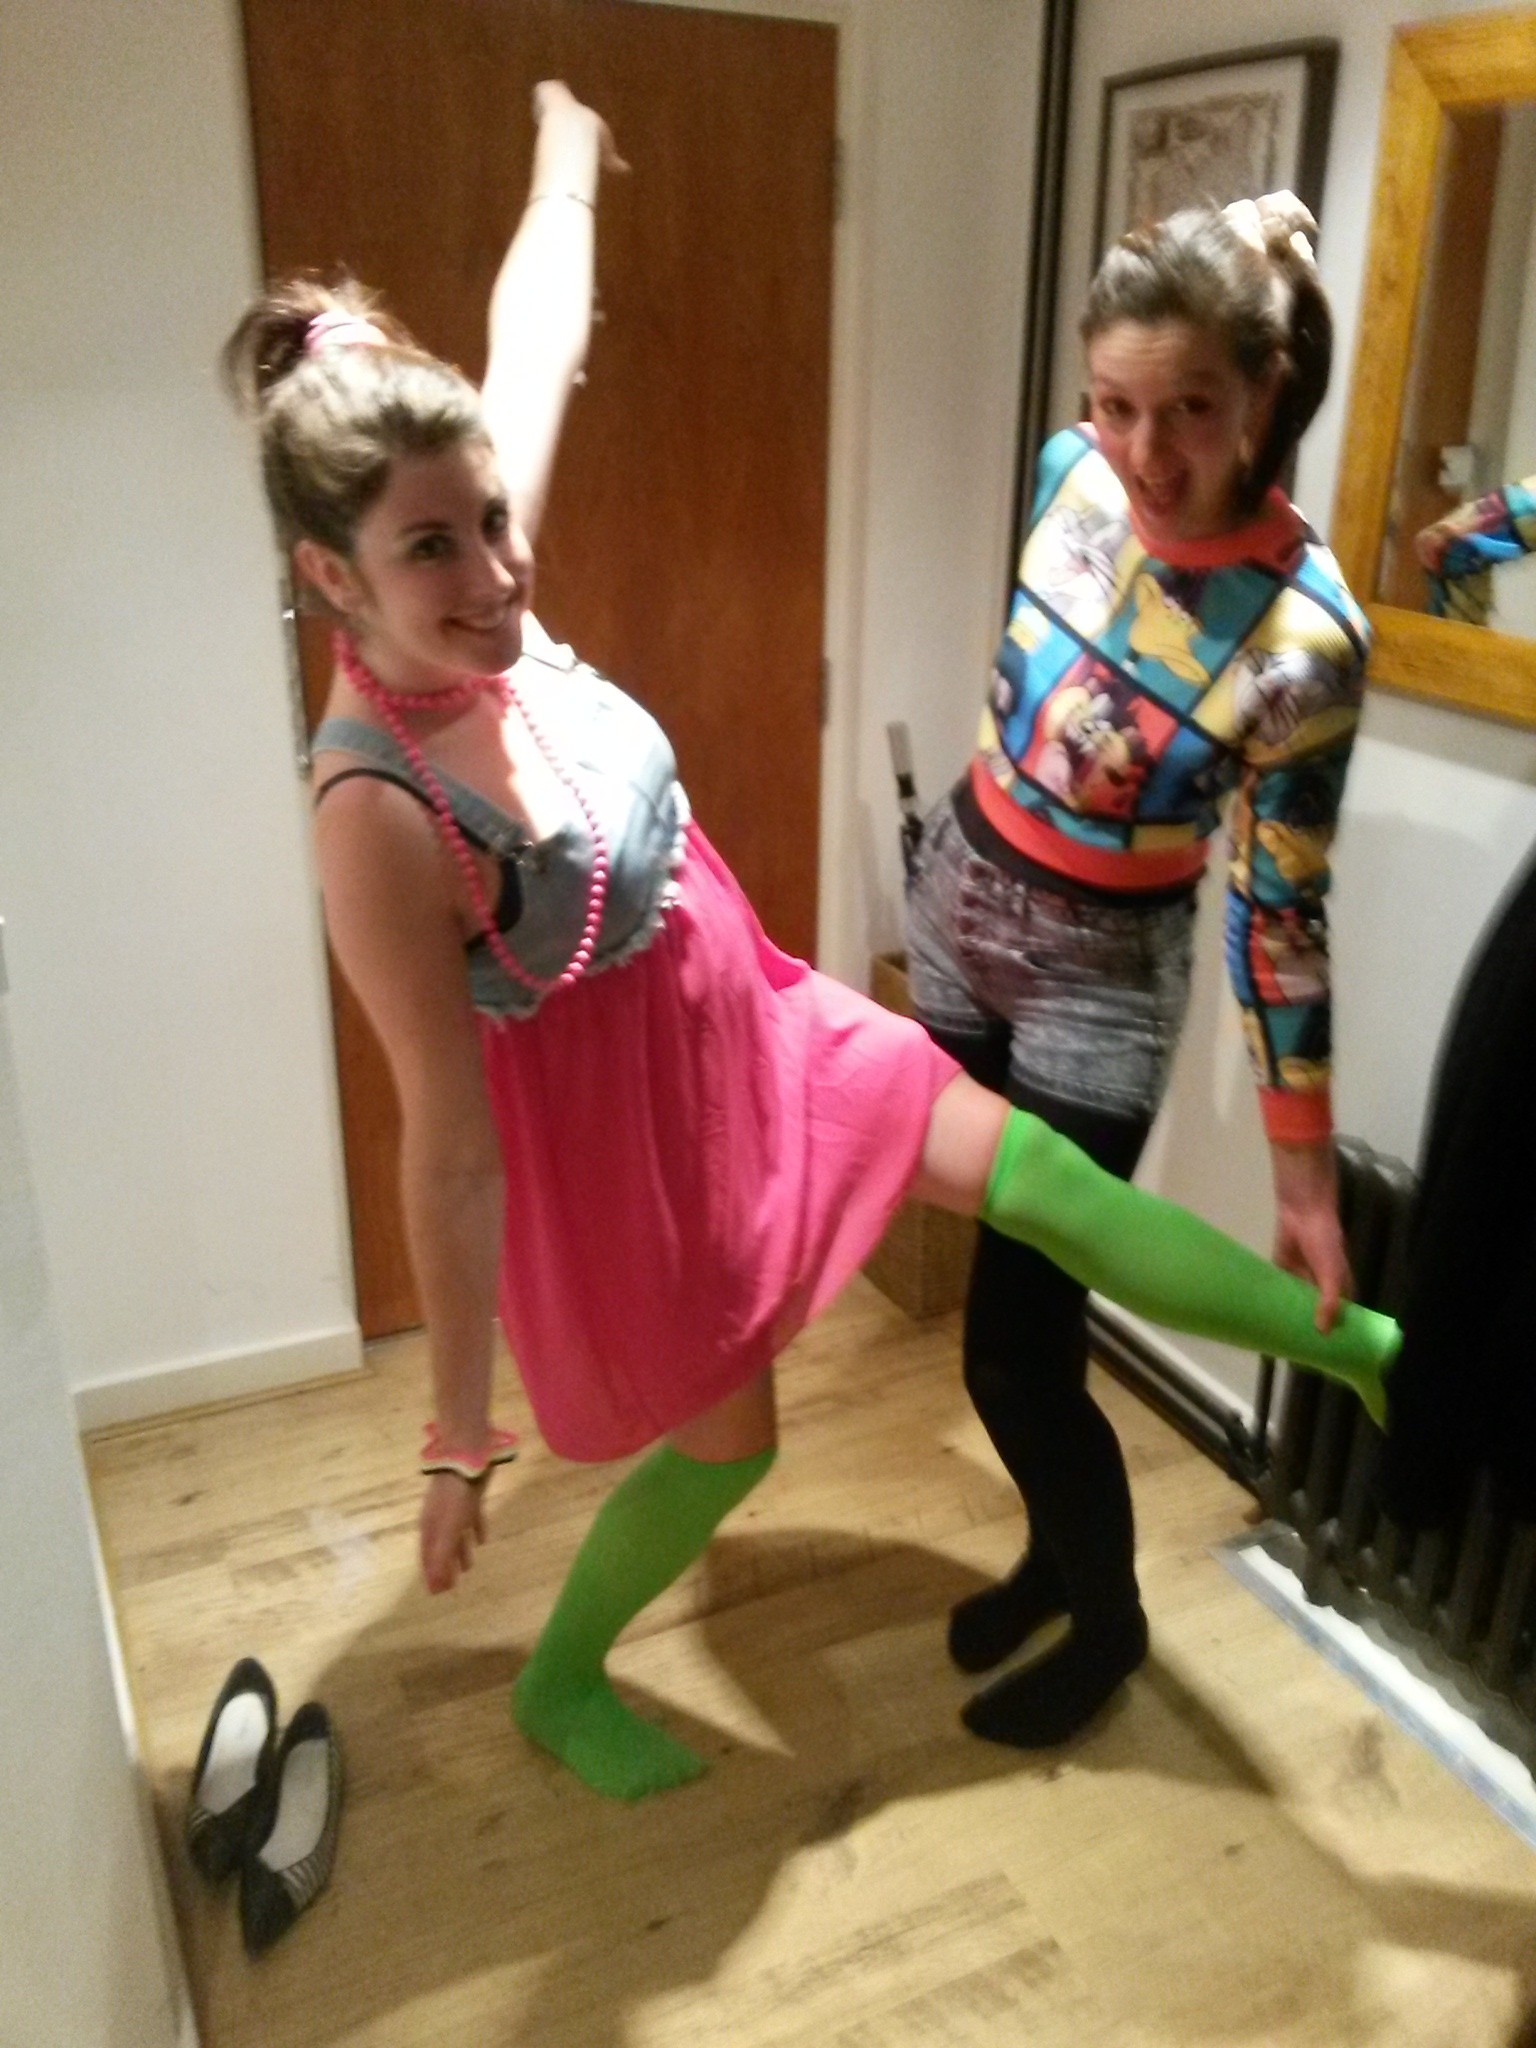 My friend and I, at the 80s themed party in our rented apartment